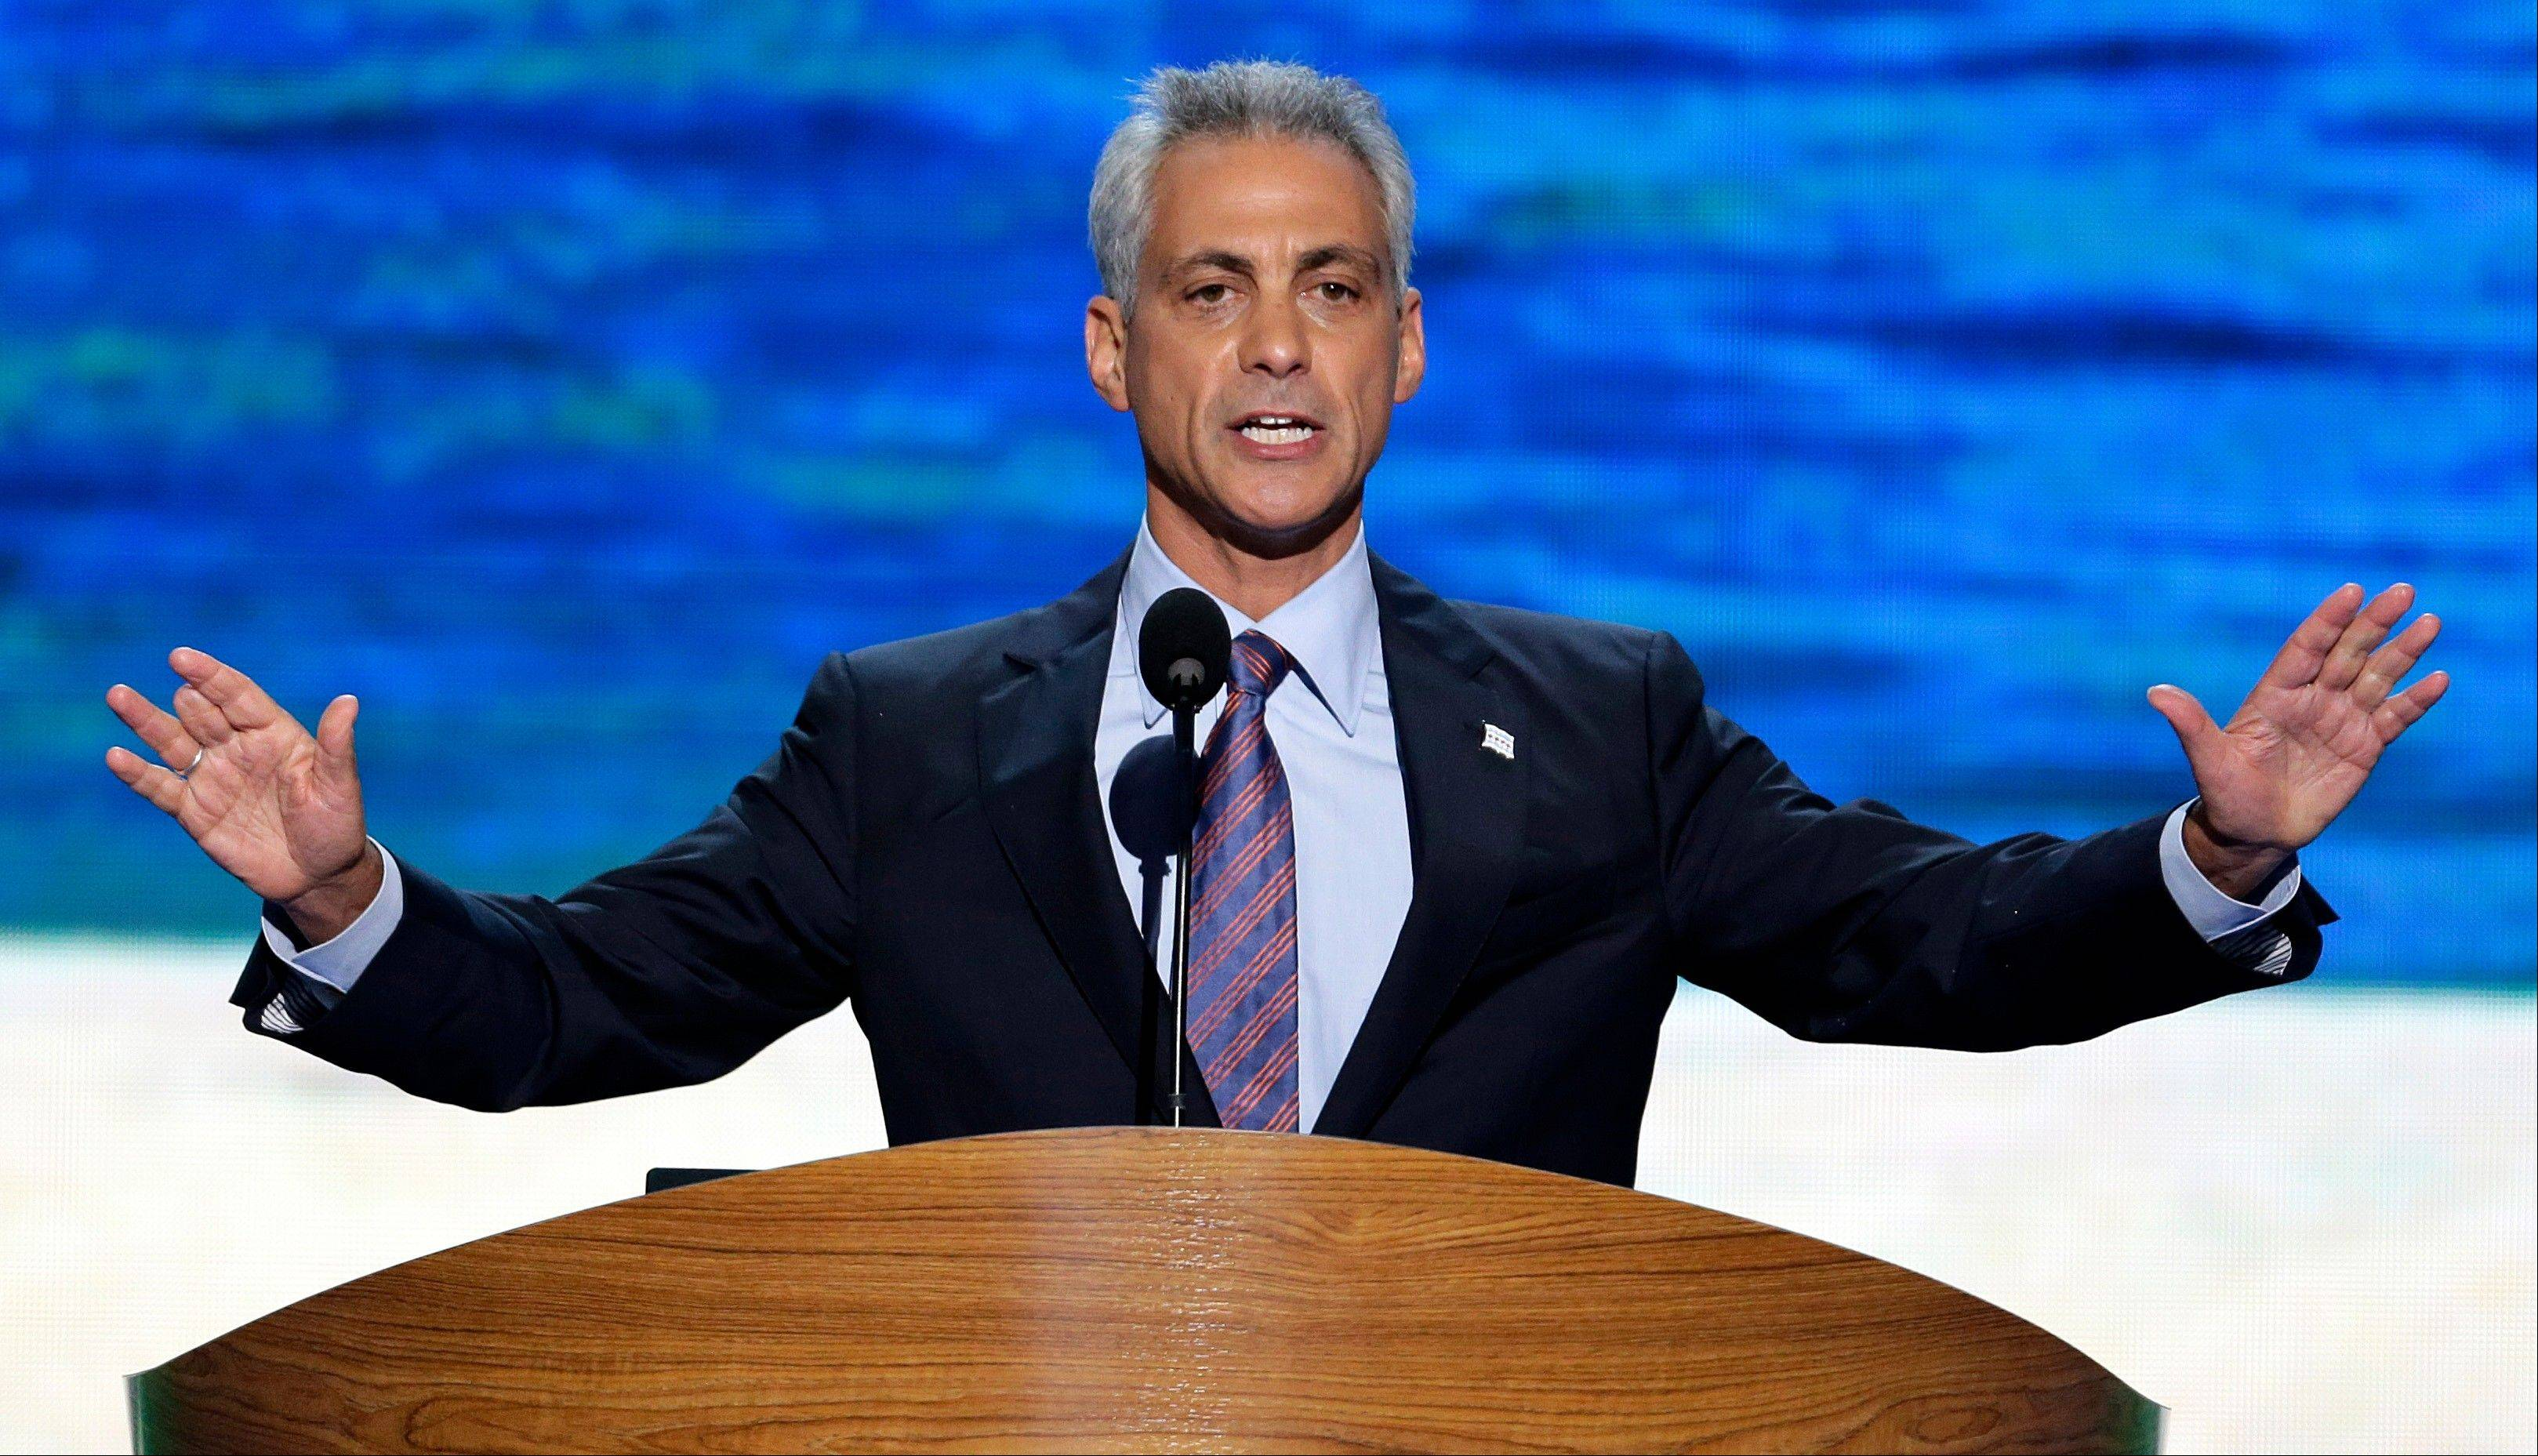 Chicago Mayor Rahm Emanuel addresses the Democratic National Convention Tuesday in Charlotte, N.C.